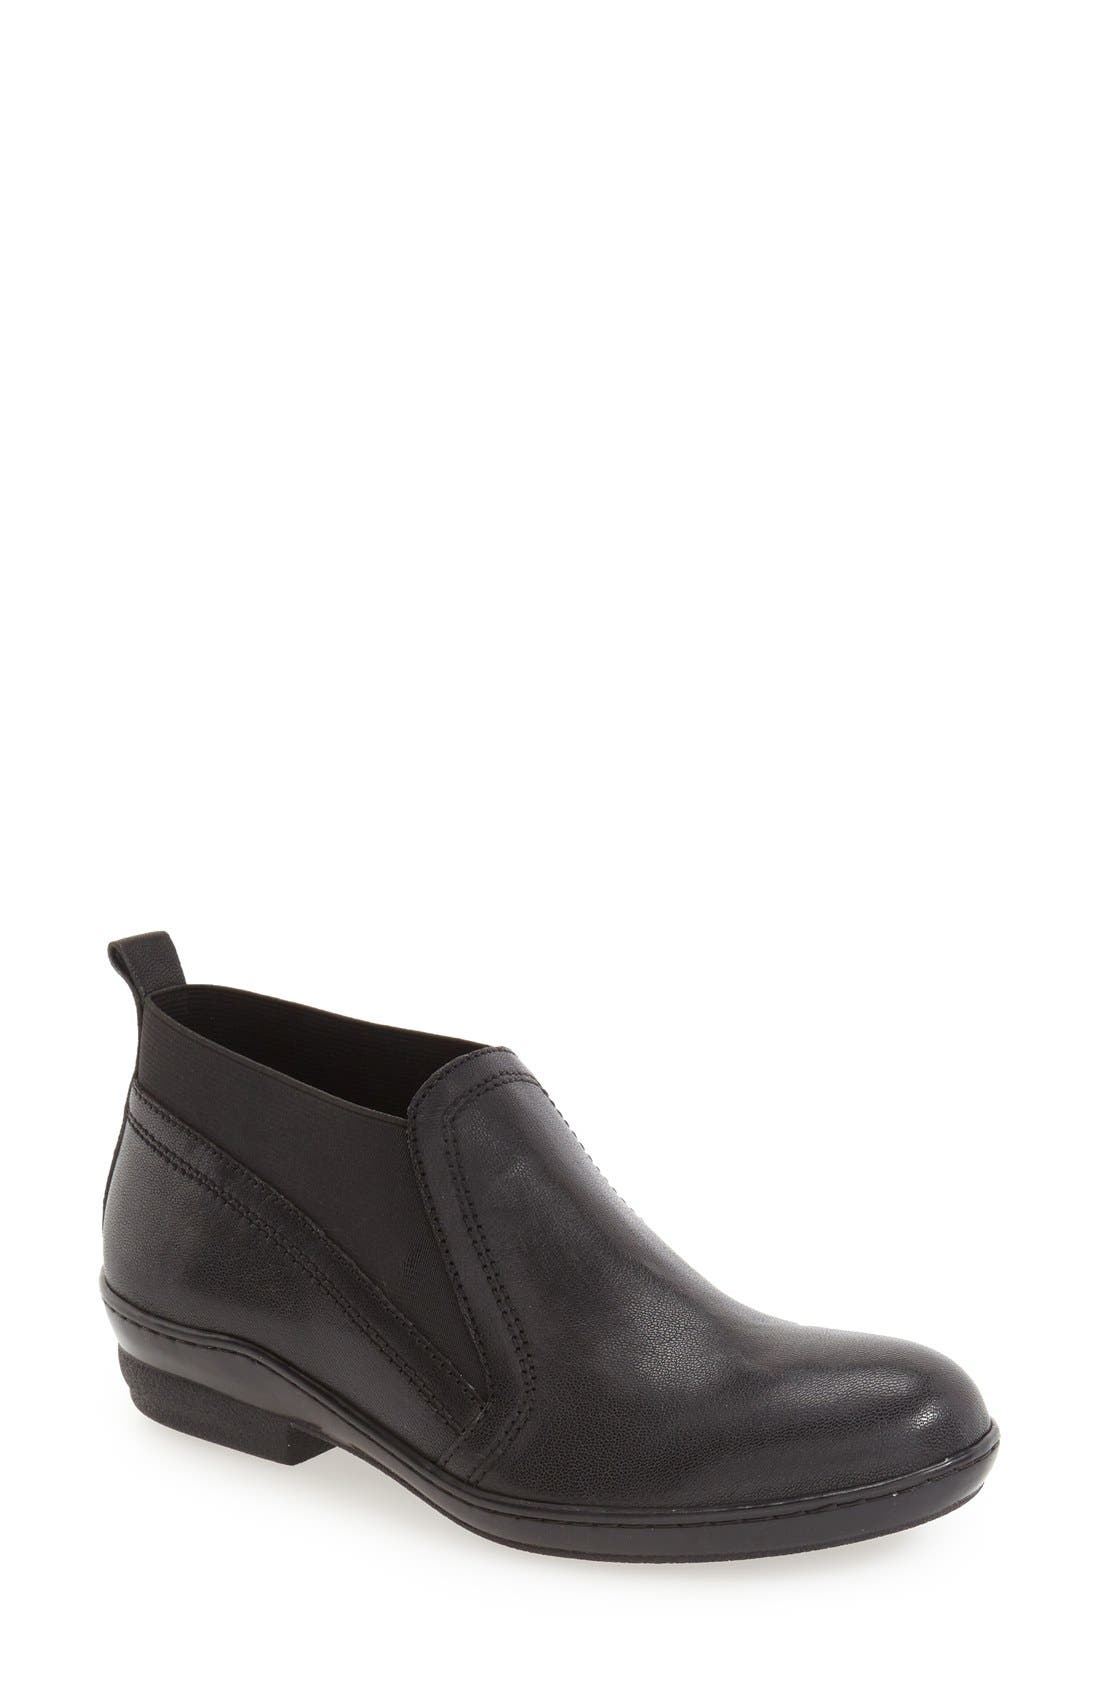 'Naya' Chelsea Boot,                         Main,                         color, Black Leather